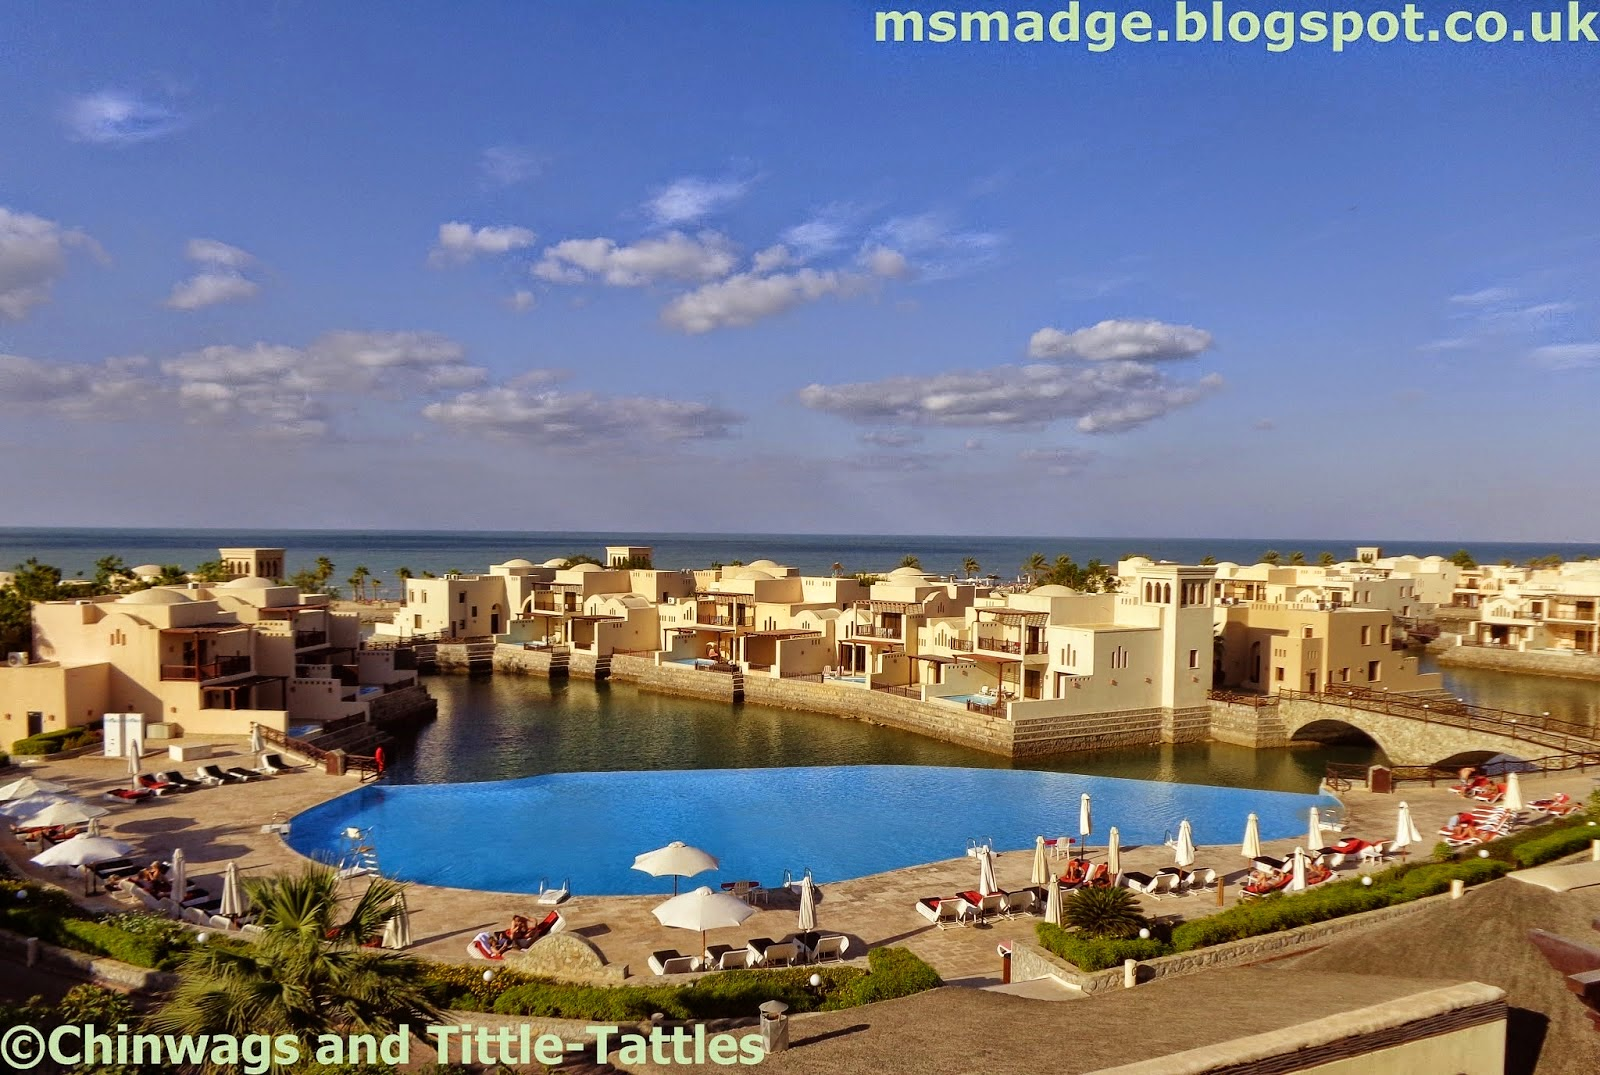 http://msmadge.blogspot.co.uk/2014/12/ras-al-khaimah-other-stunning-emirate.html